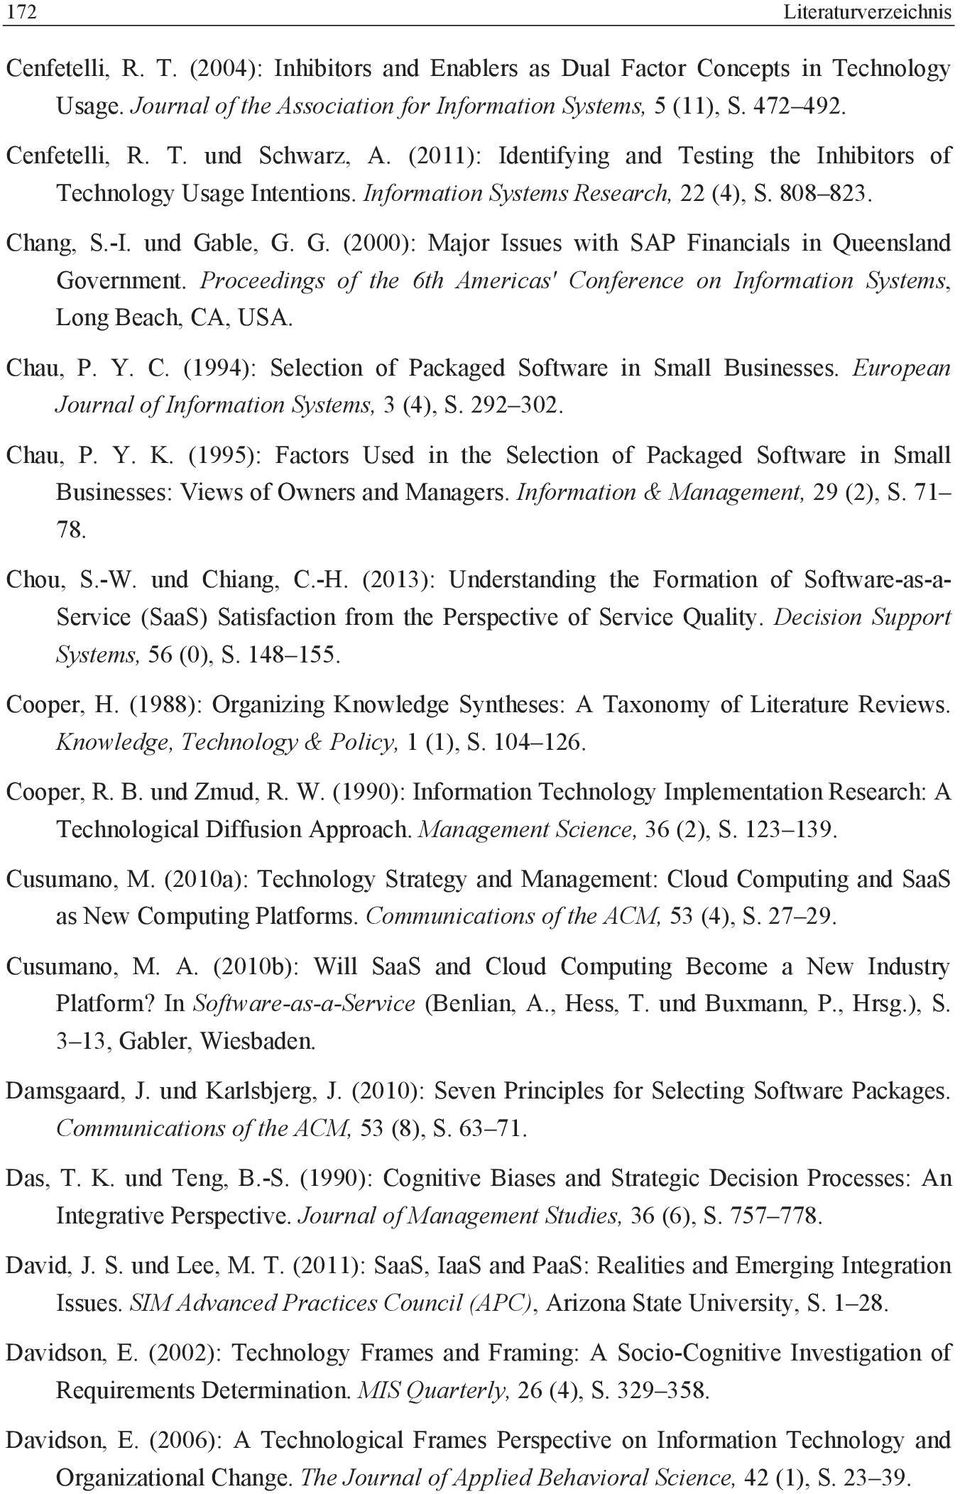 ble, G. G. (2000): Major Issues with SAP Financials in Queensland Government. Proceedings of the 6th Americas' Conference on Information Systems, Long Beach, CA, USA. Chau, P. Y. C. (1994): Selection of Packaged Software in Small Businesses.